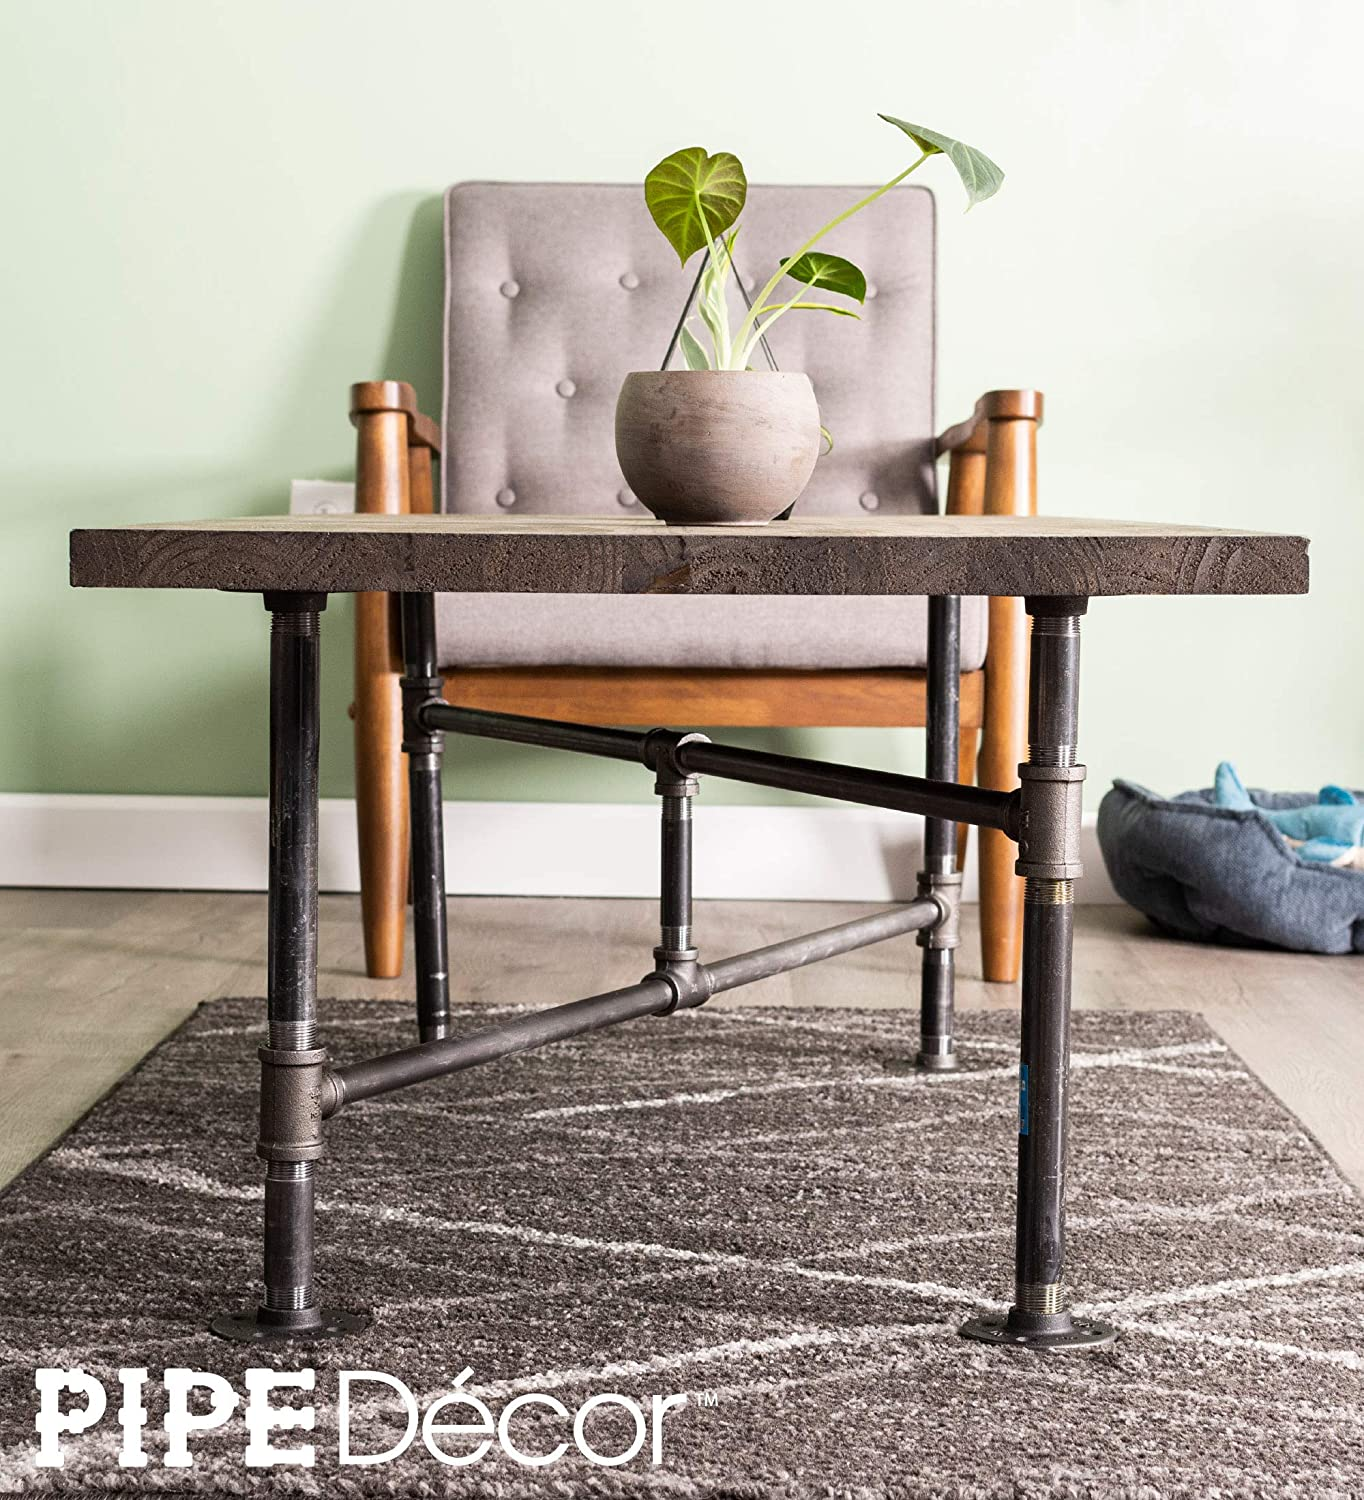 Dark Grey//Black Rough Pipes Vintage Furniture Unfinished Raw Steel Metal Heavyweight Construction Rustic Living Room Office Table Base Kit Industrial Pipe Decor Coffee Table Leg Set Turnpike Design